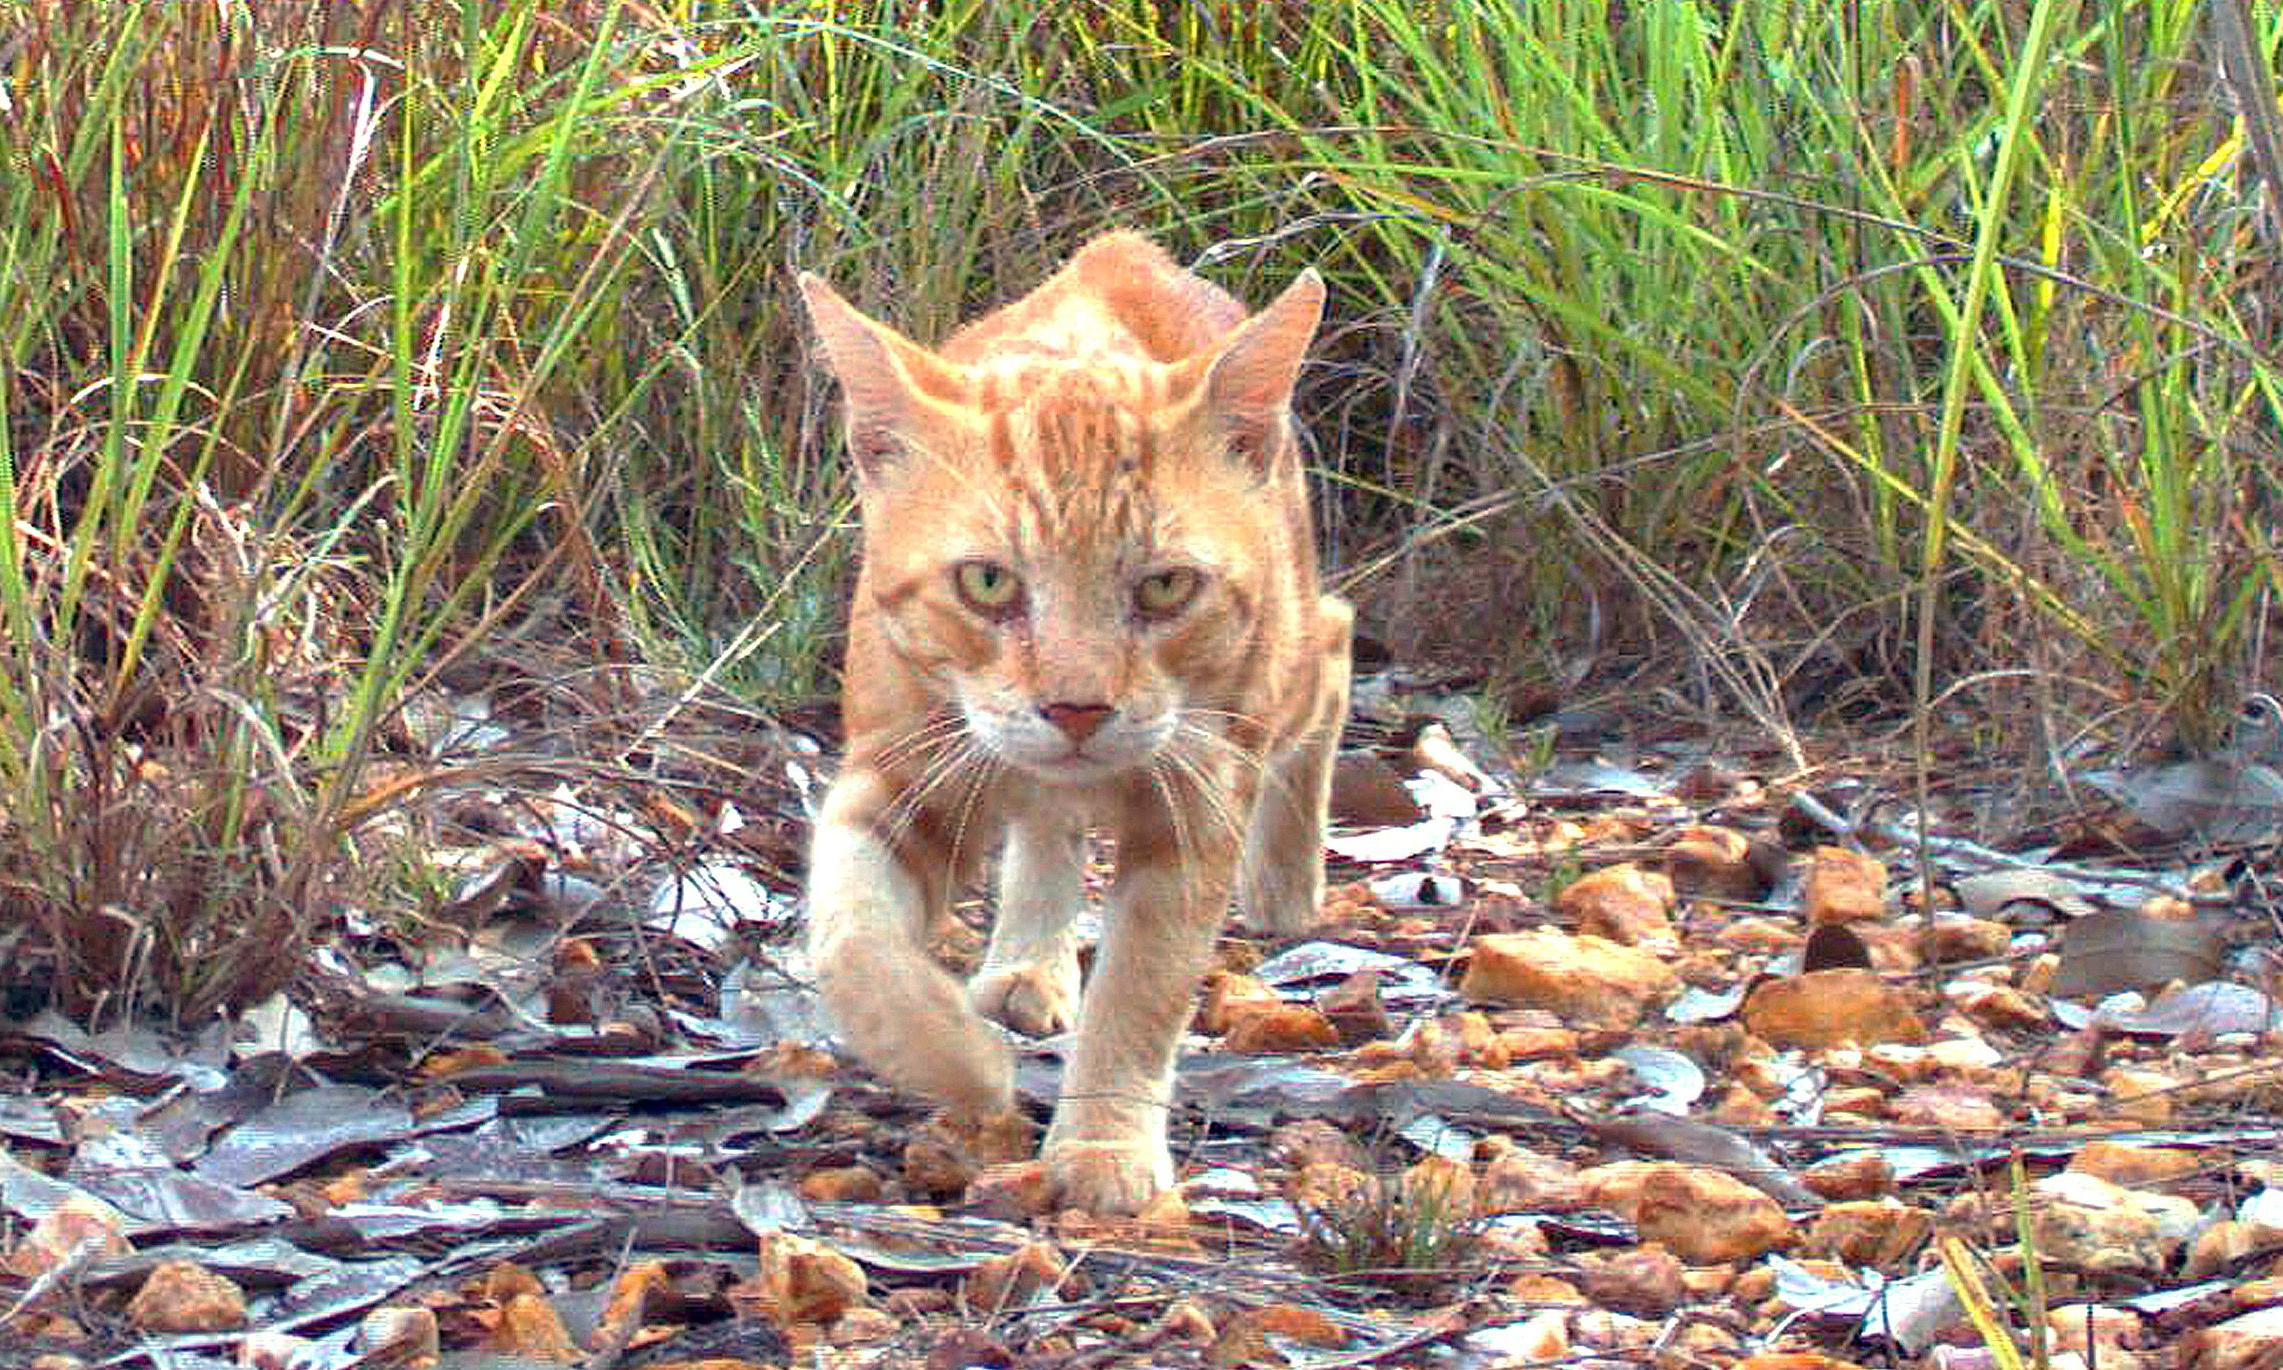 Parasitic disease spread by feral cats likely to be killing native wildlife